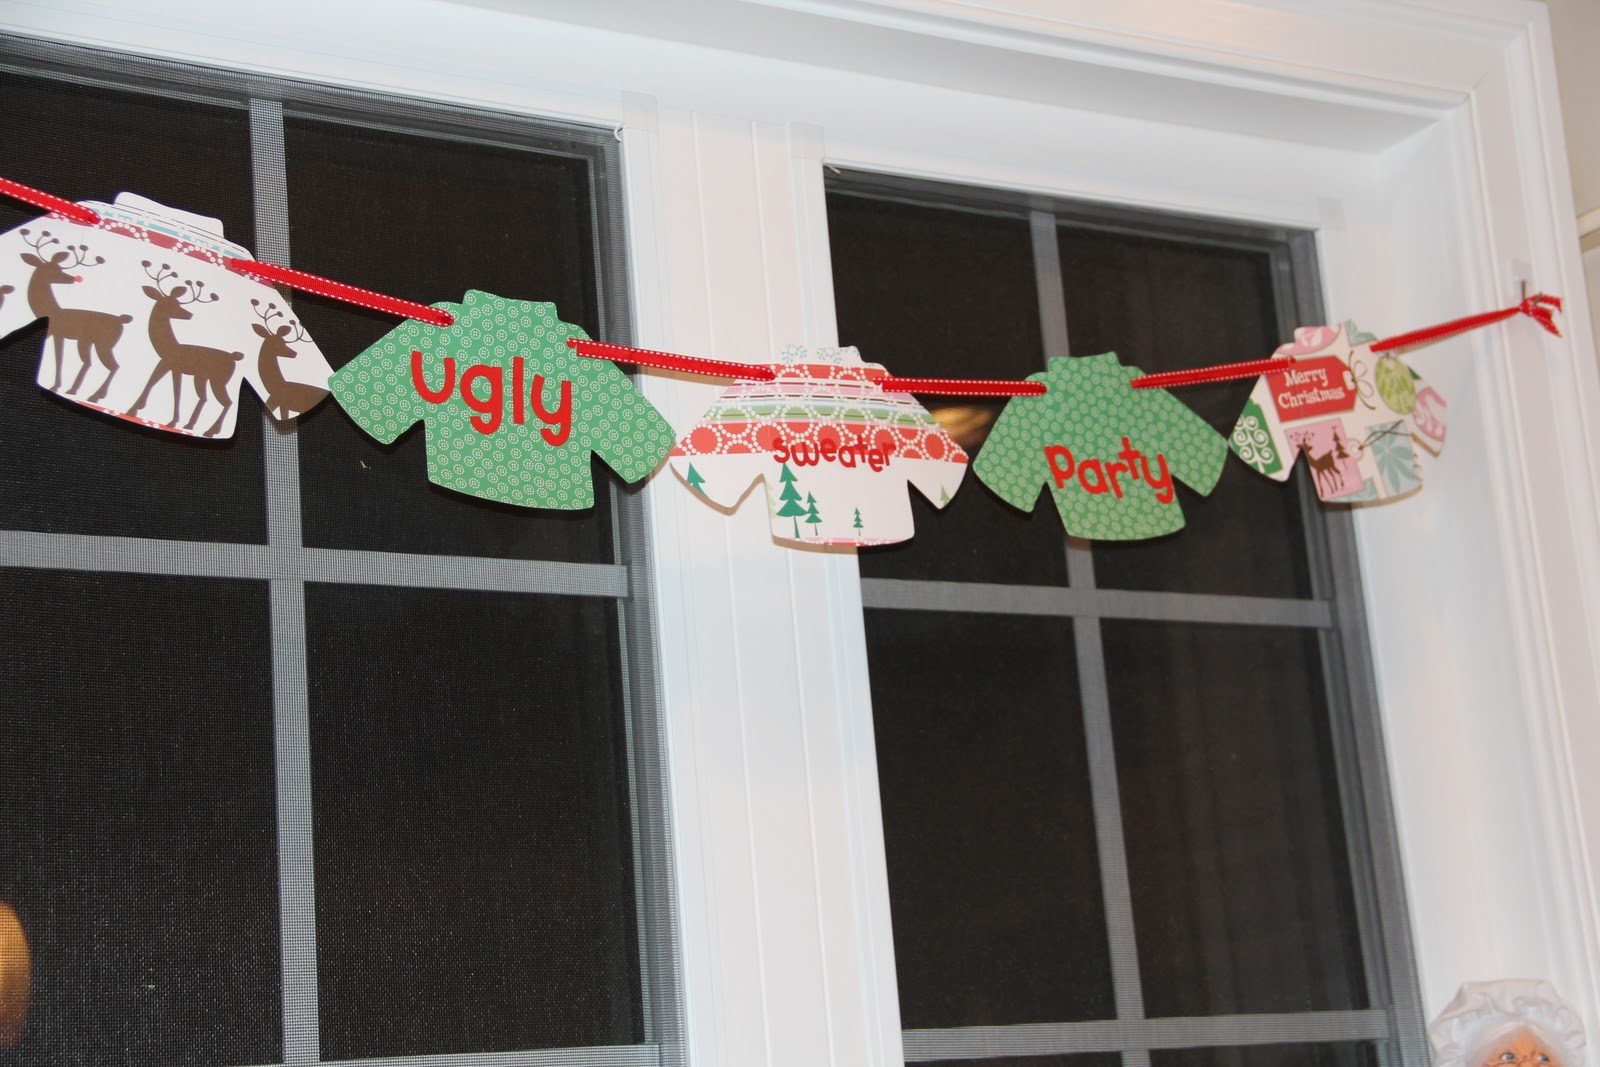 christmas decorating decor centerpiece creative party ugly sweater elitflat oh ideas my decorations galery